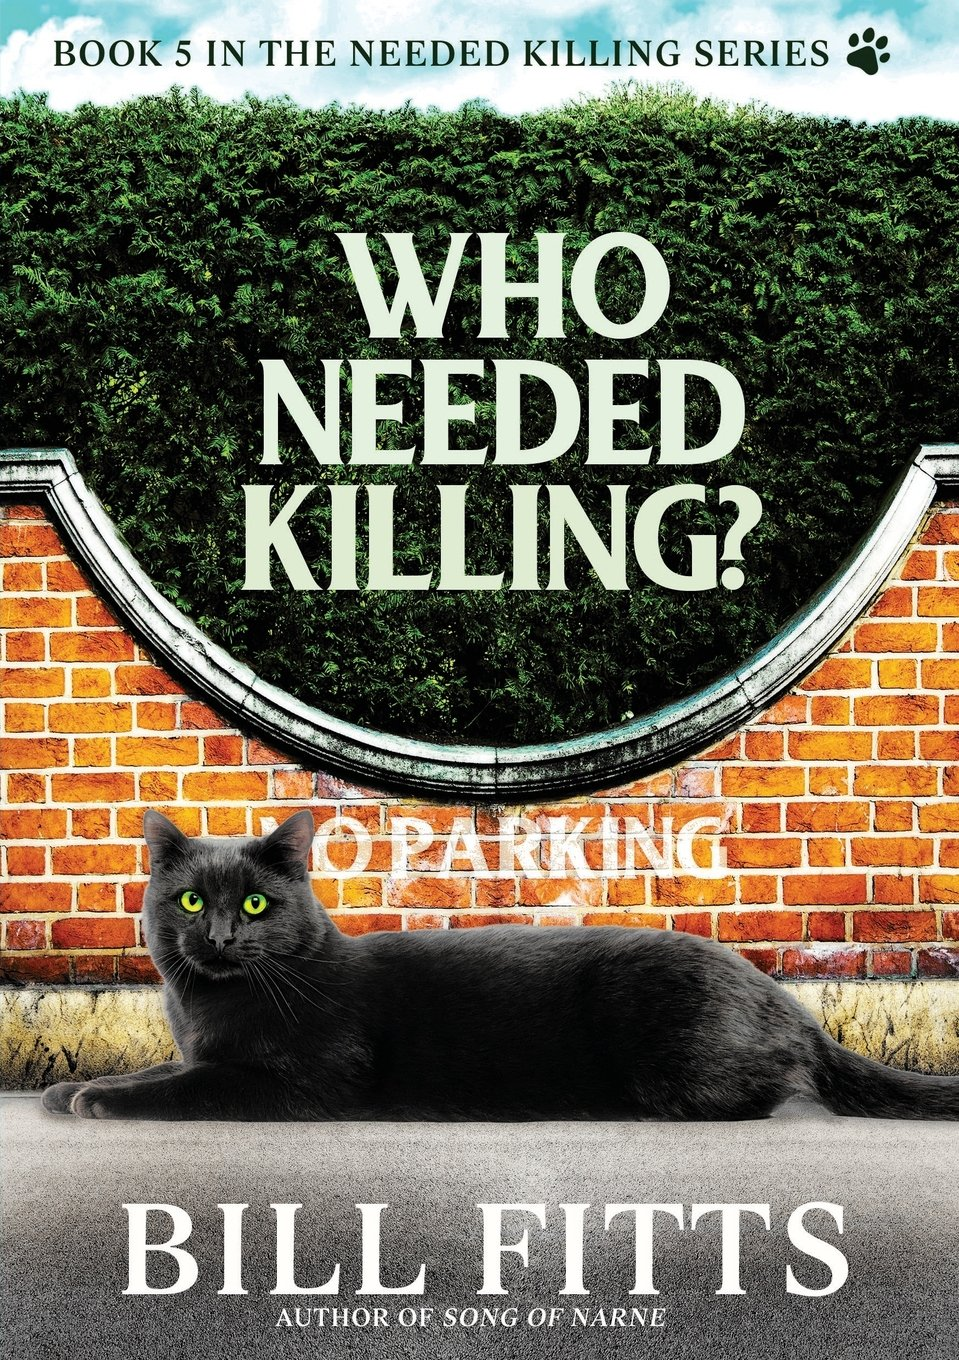 Download Who Needed Killing? (Needed Killing Series) ebook